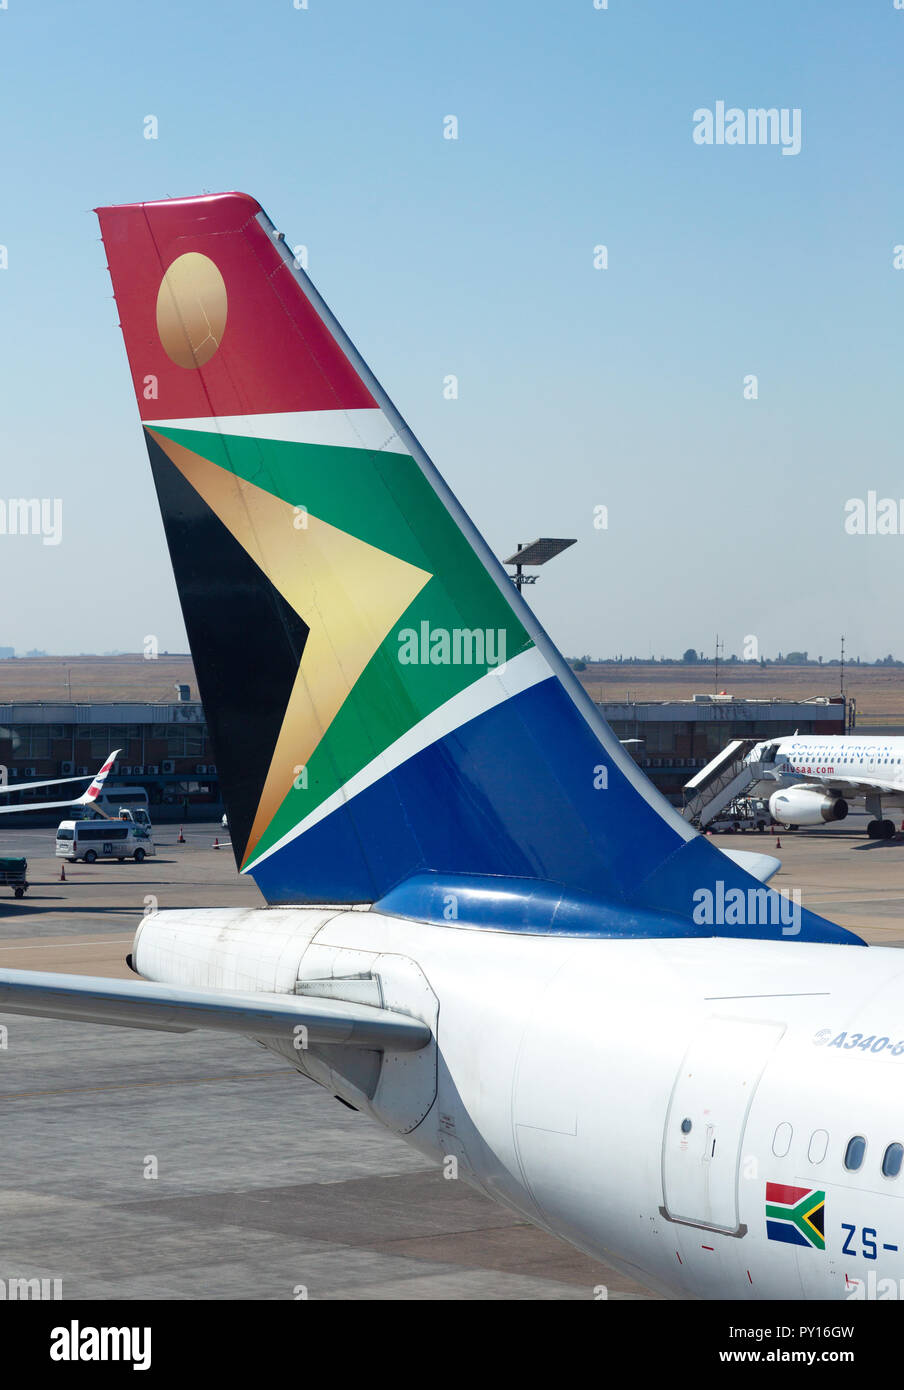 Tailfin of an Air Namibia plane on the ground, Windhoek airport, Namibia Africa - Stock Image